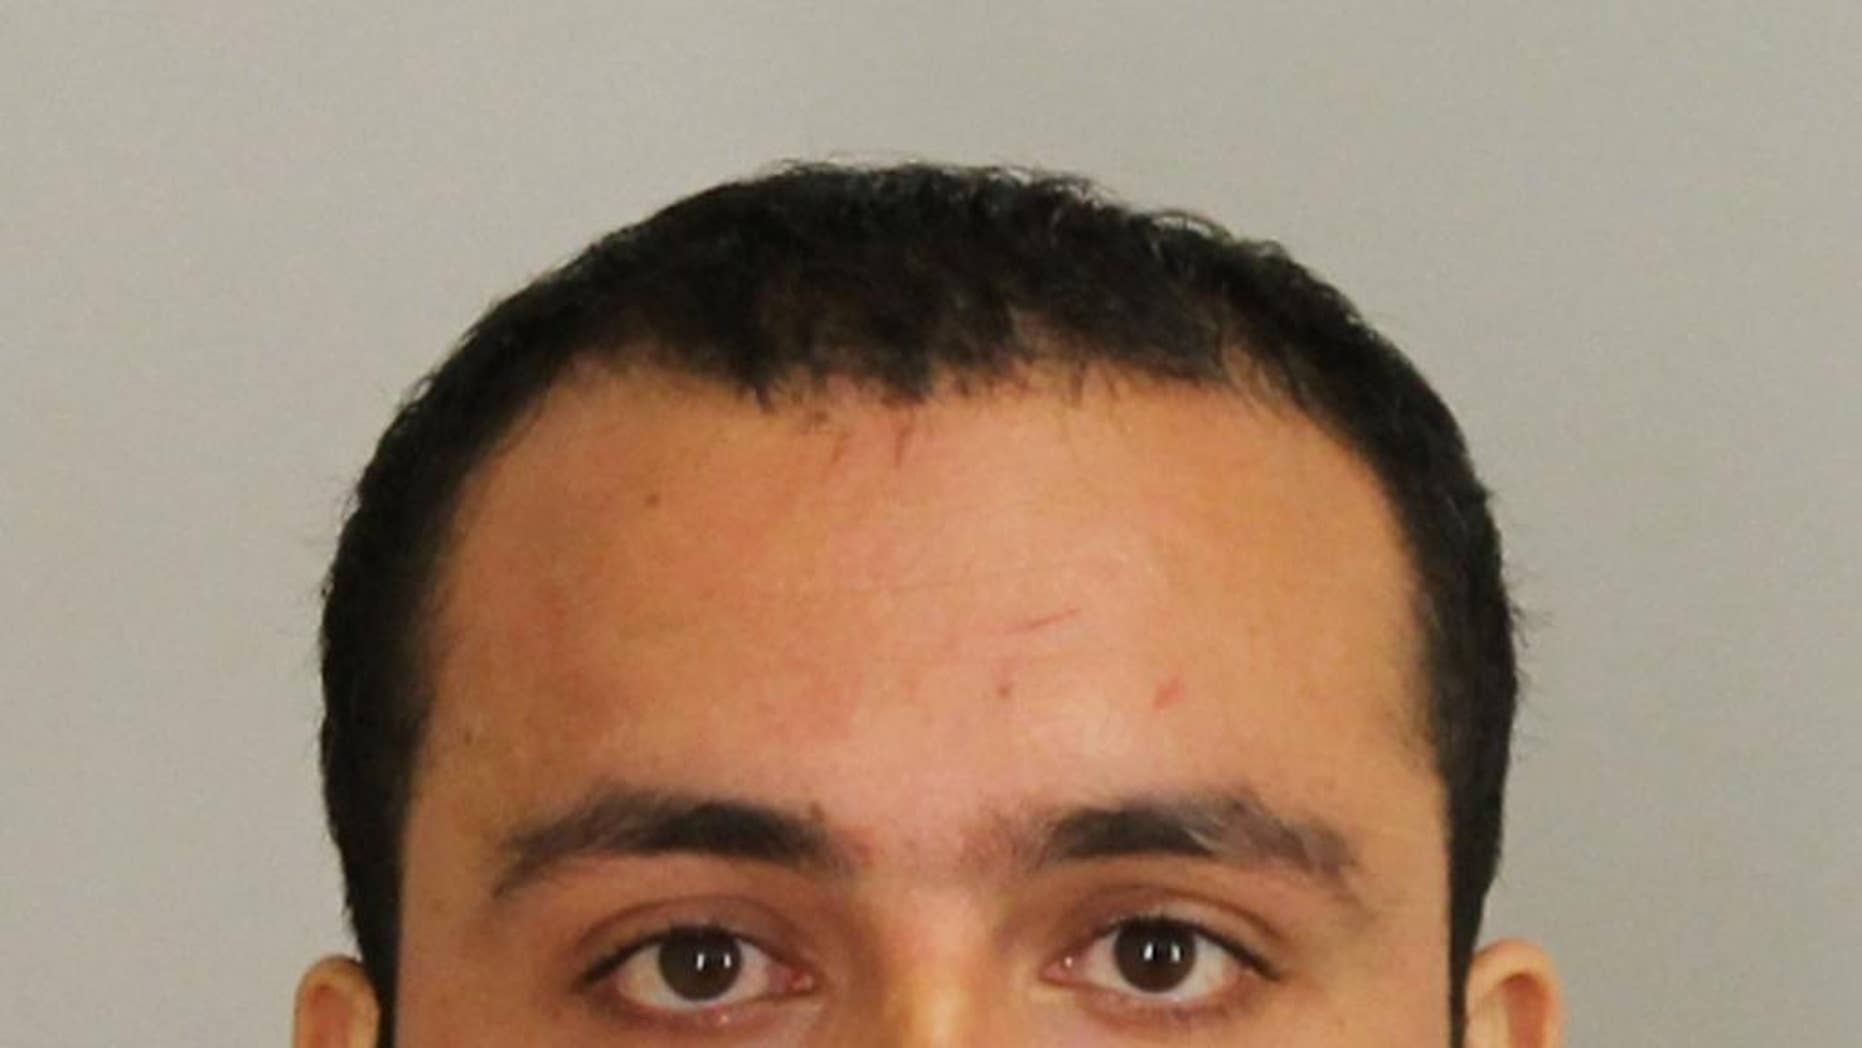 FILE - This Sept.2016 file photo provided by Union County Prosecutor's Office shows Ahmad Khan Rahami.  The sister of a Rahami, the man charged with setting off bombs in New York and New Jersey and injuring 31 people this month, says he was getting ready to hit her with a dumbbell in August 2014 and stabbed another brother who came to her aid.(Union County Prosecutor's Office via AP, File)